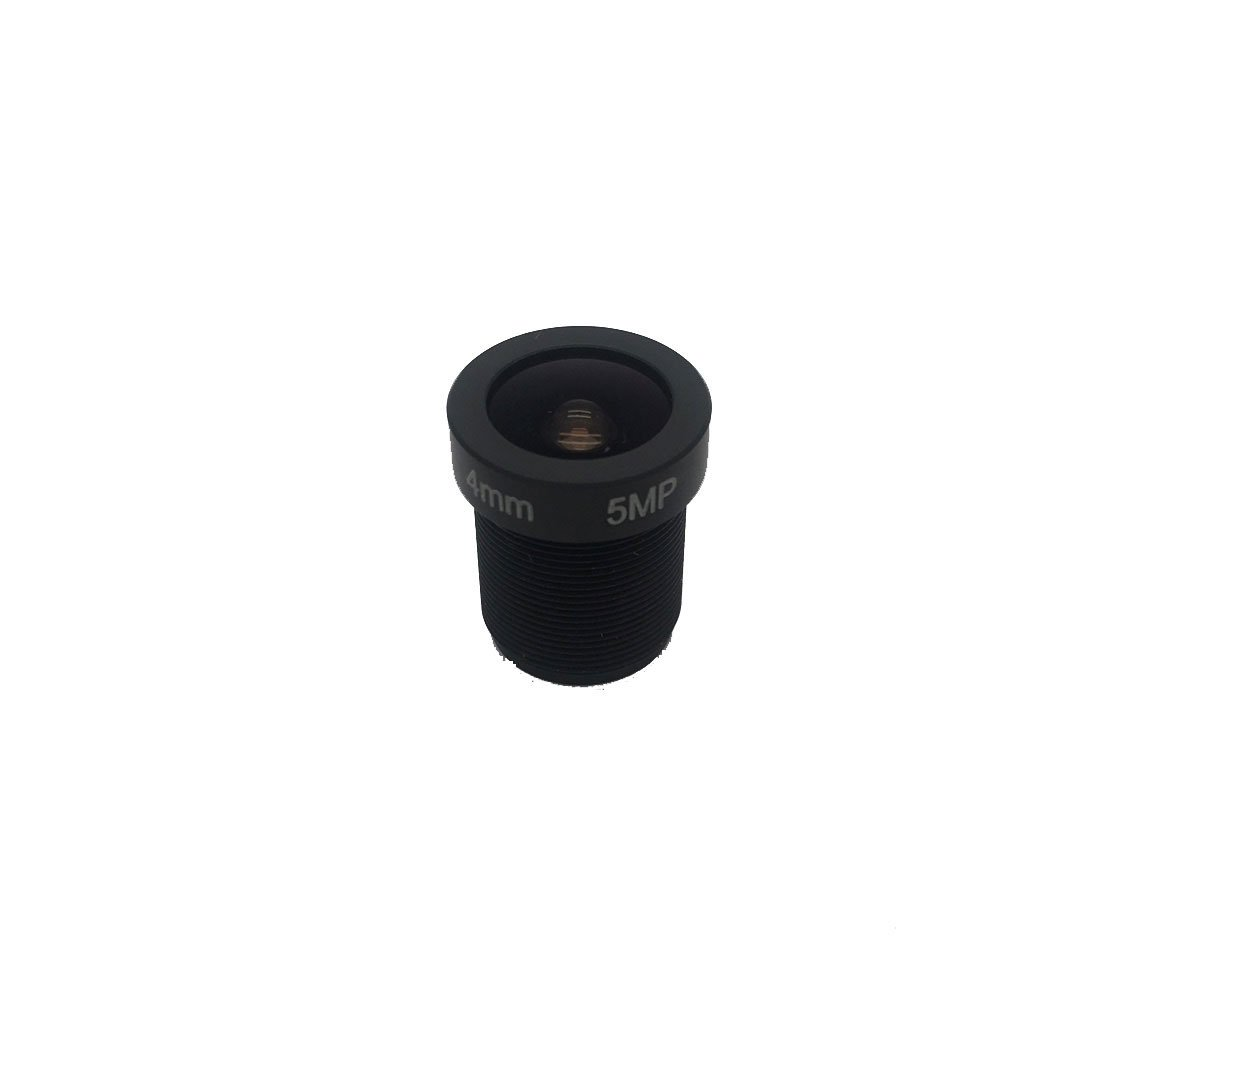 Yohii 4mm/0.16 Inch 1/2.5'' Format 5MP IR Fixed Iris Lens for CCTV Board Video Camera